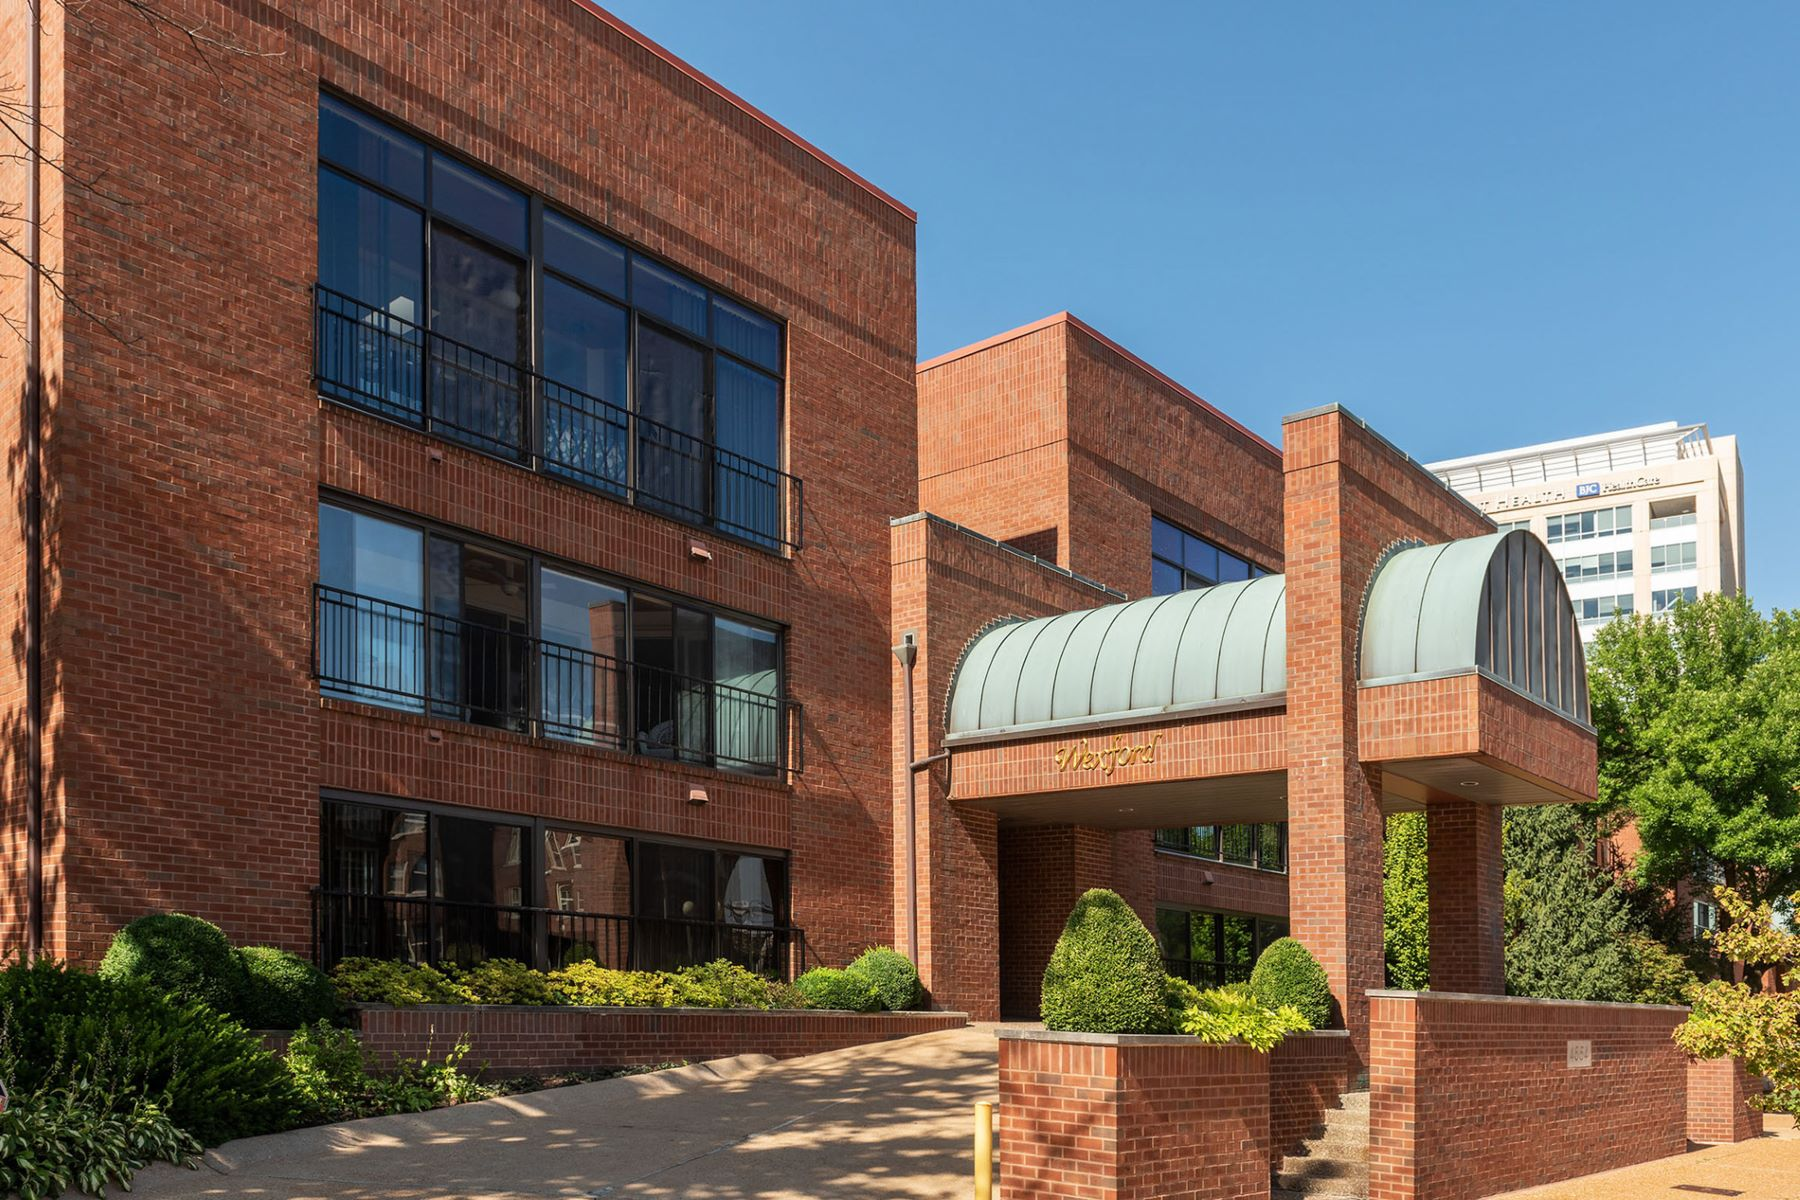 Property for Sale at Laclede Ave #102 4554 Laclede Ave # 102 St. Louis, Missouri 63105 United States